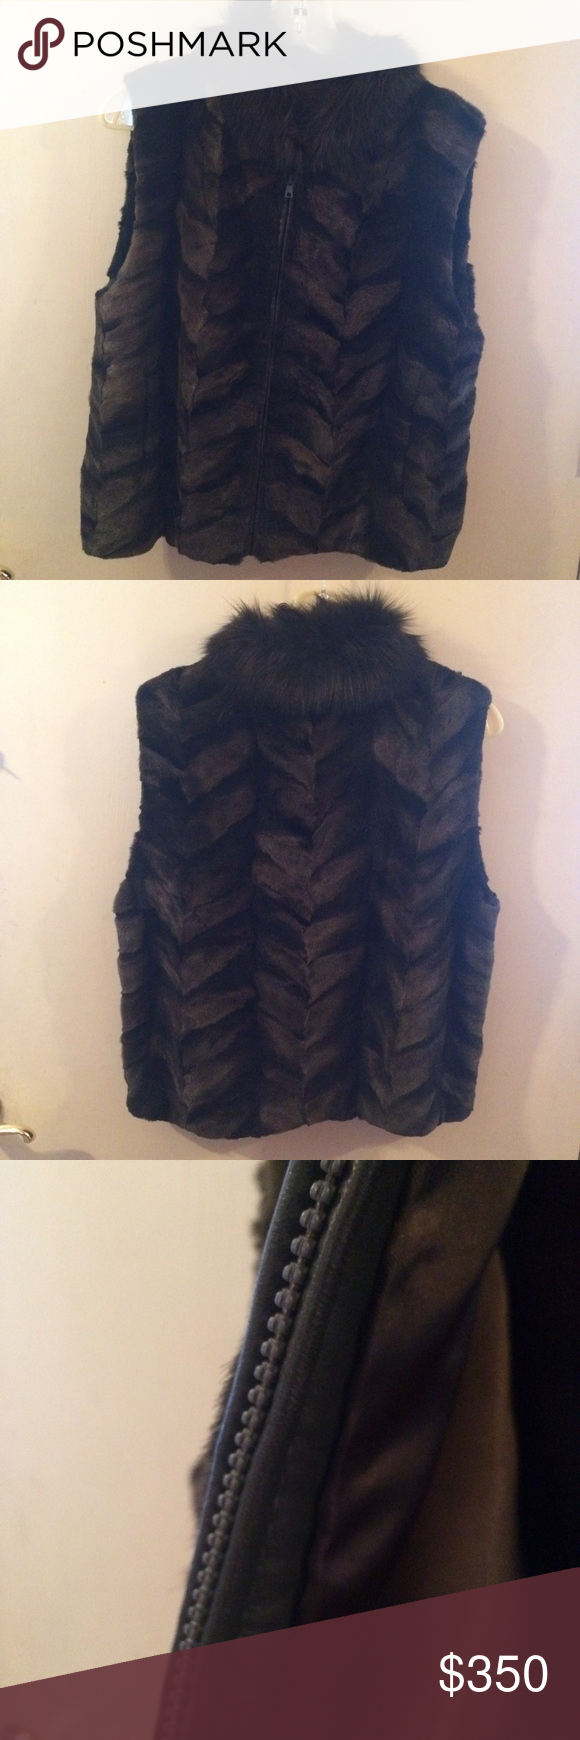 Fox fur vest. Hand sewn fox fur vest in excellent condition. It is lined and has a heavy duty zipper protected by a letter seam. It is a pattern in green and brown tones. A certain one of a kind item! Jackets & Coats Vests